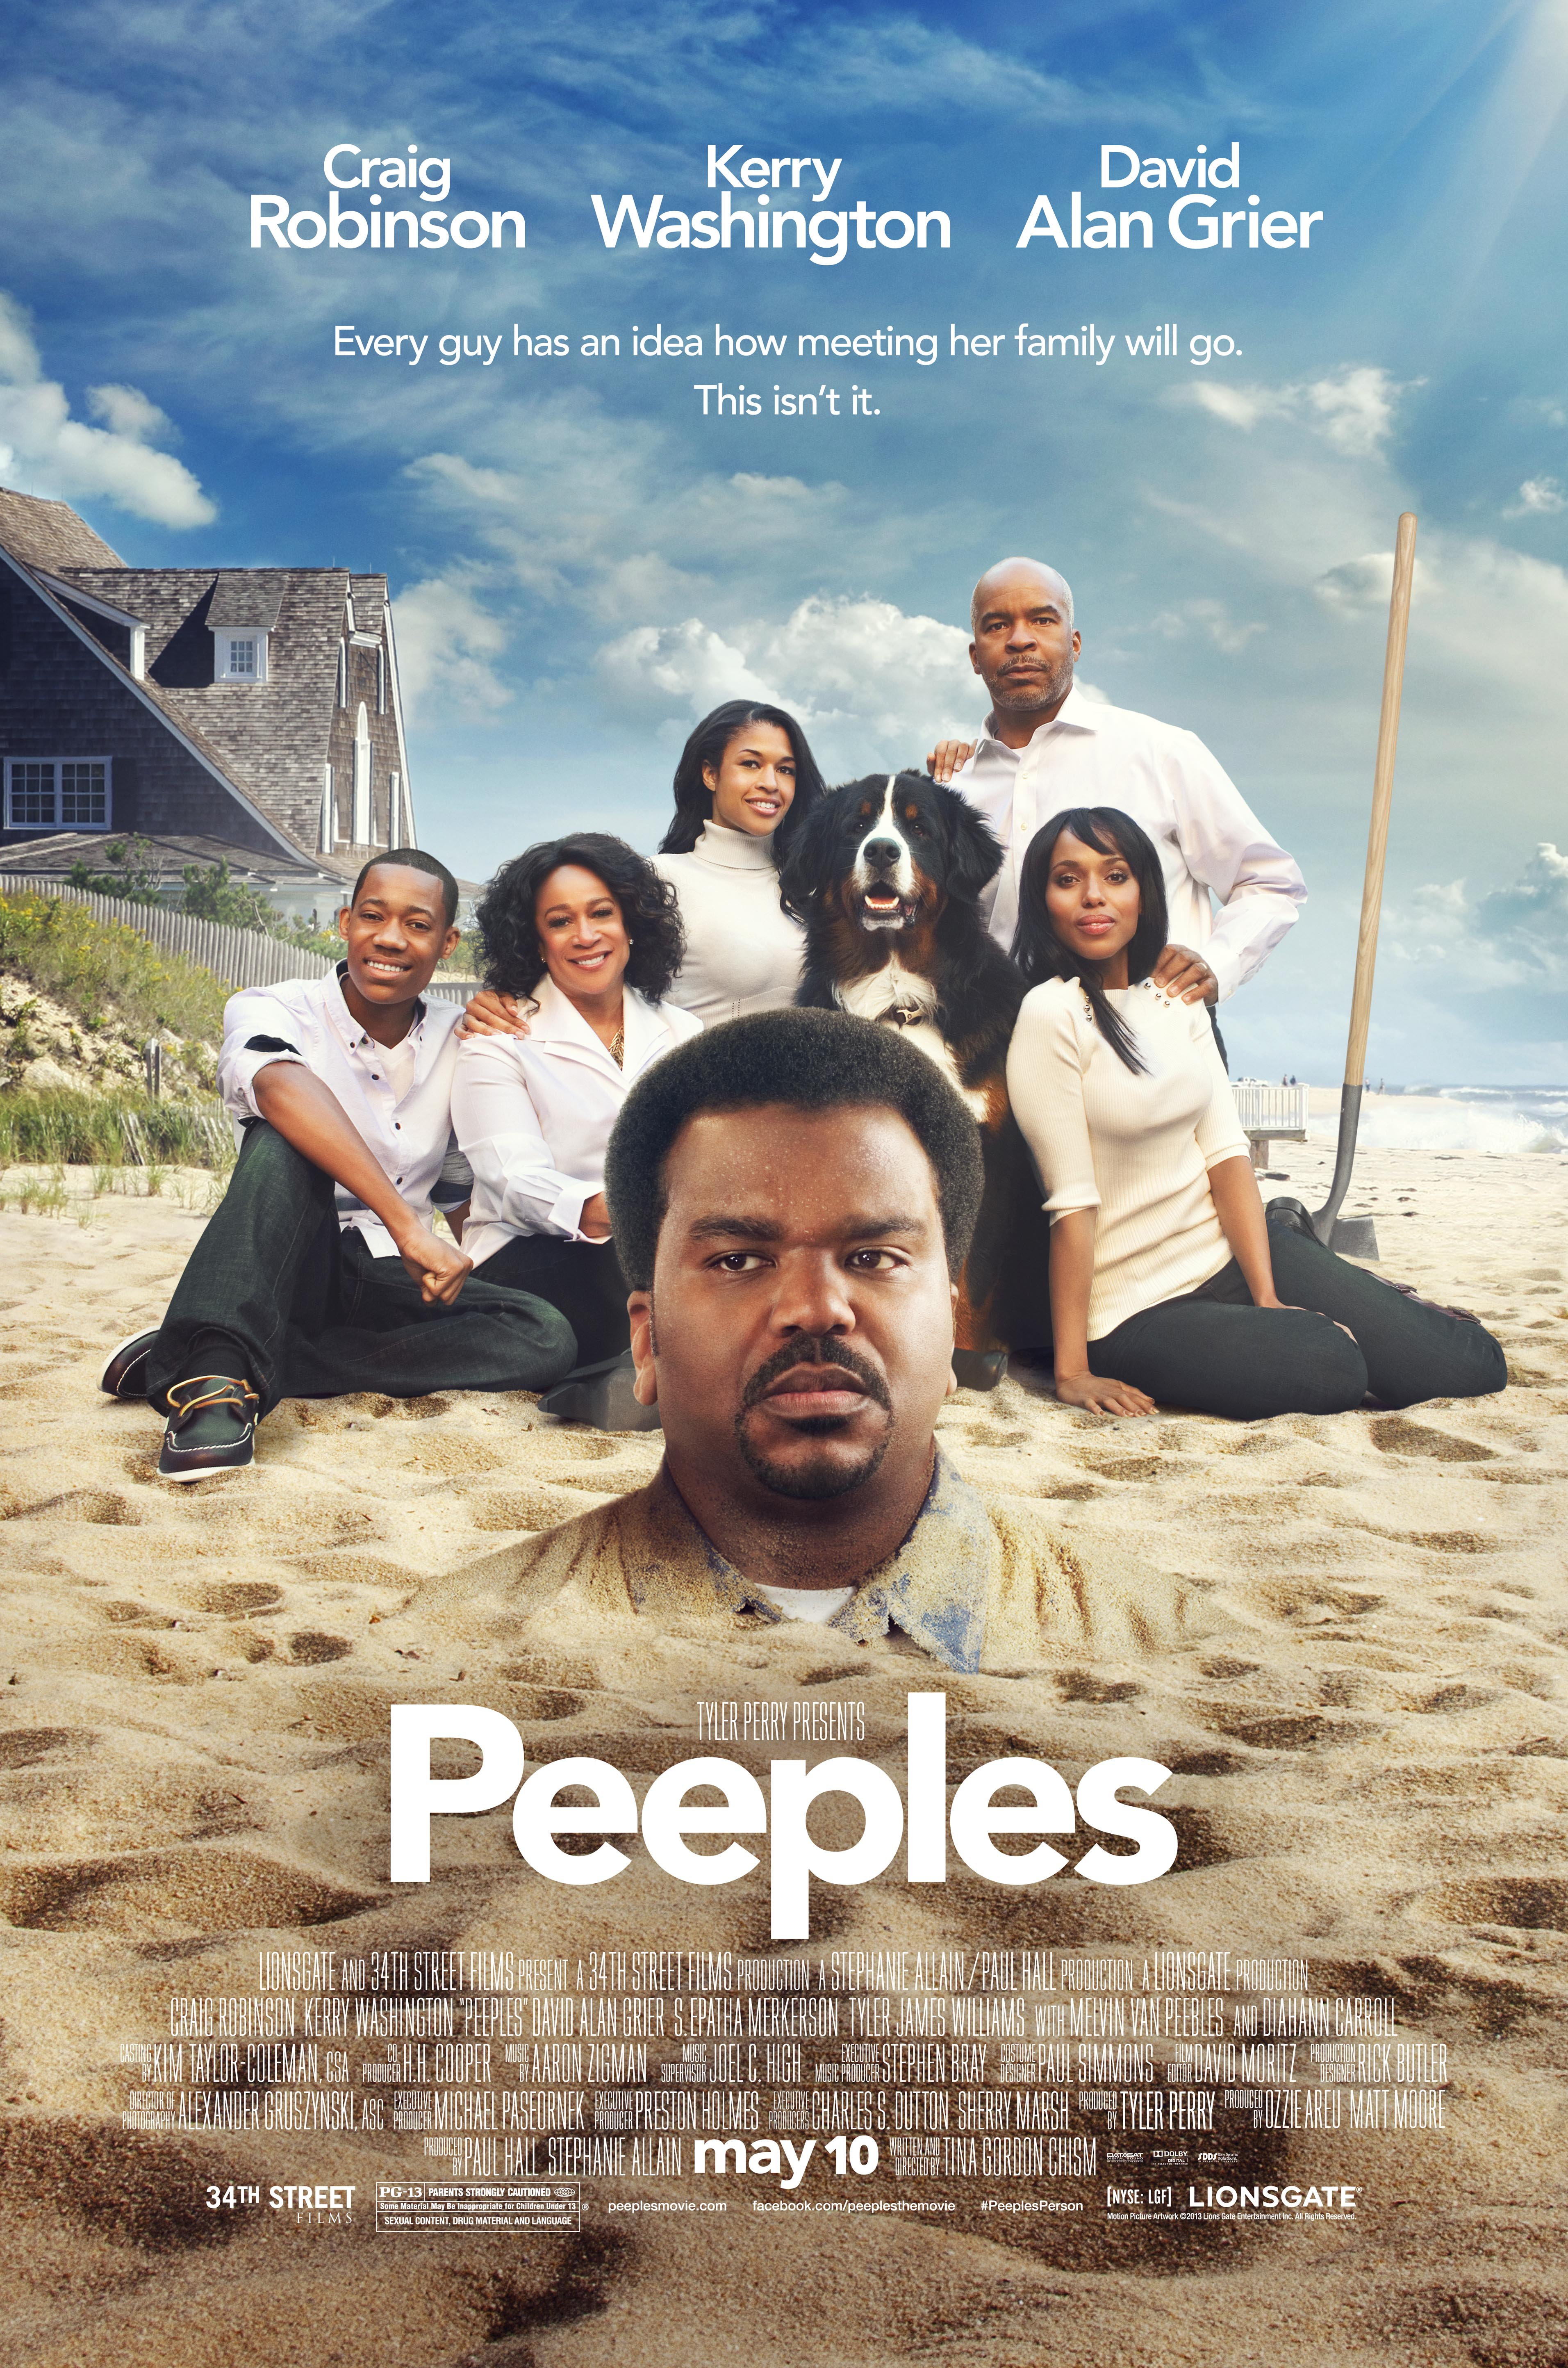 Who are my Peeples? #PeeplesPerson